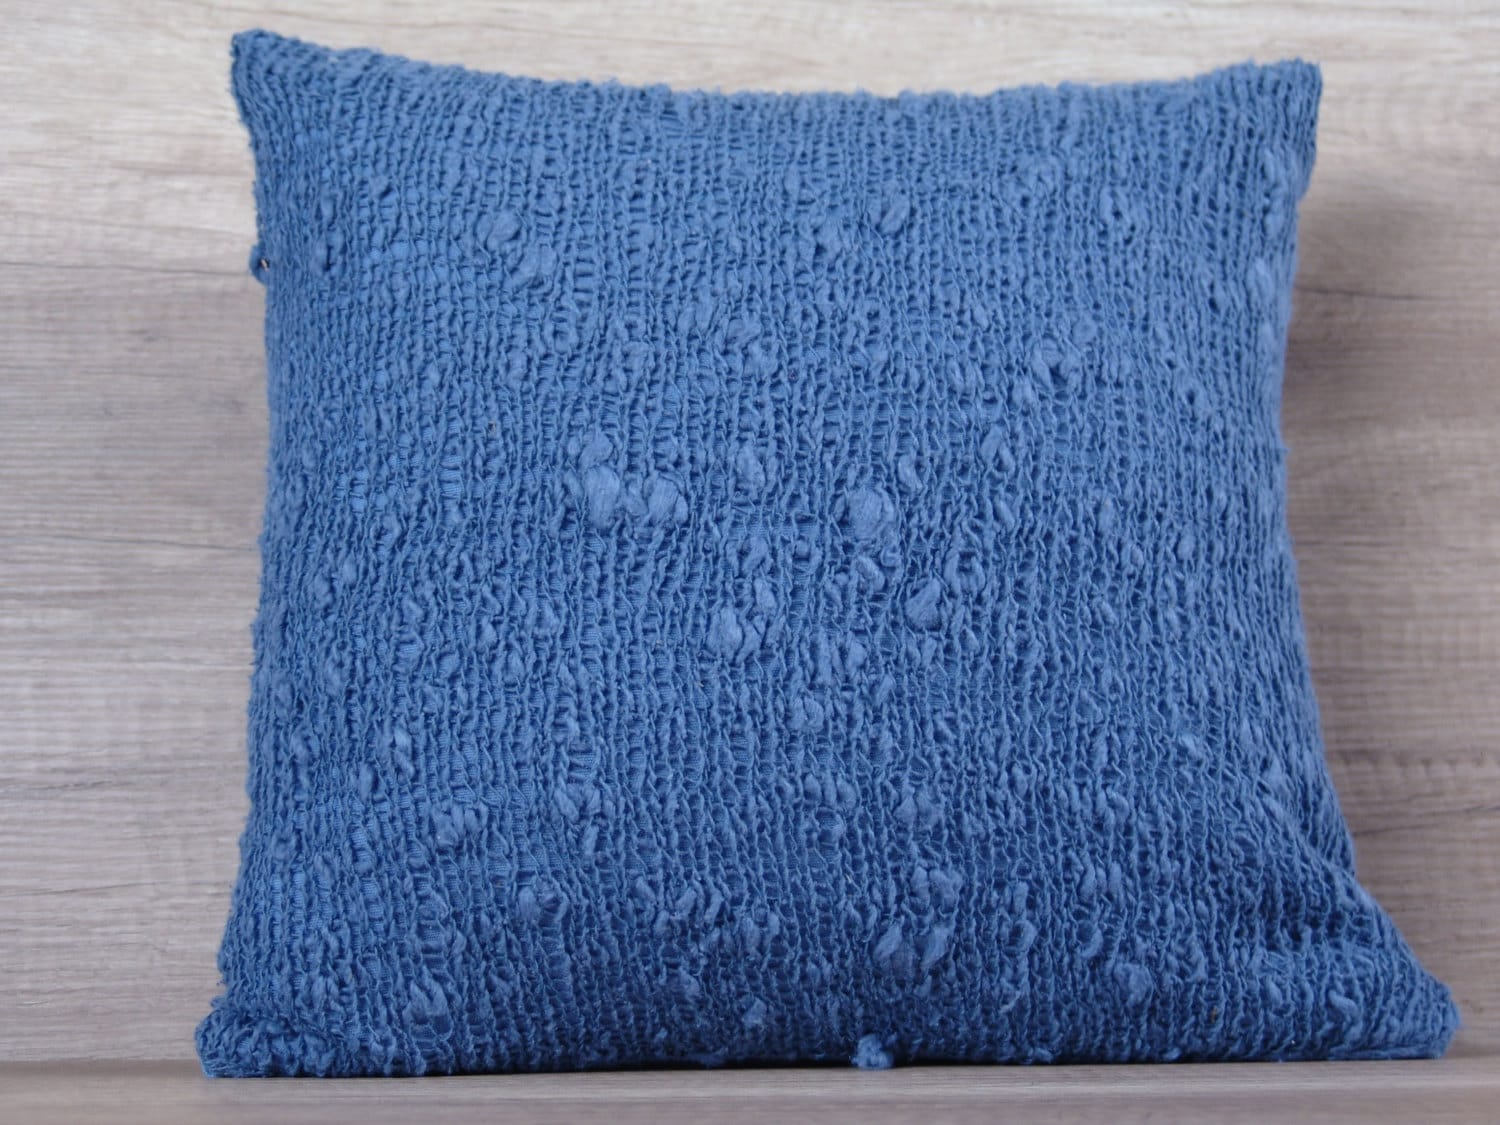 Decorative Pillows In Navy Blue : Navy blue knit decorative pillow case knitted euro pillow